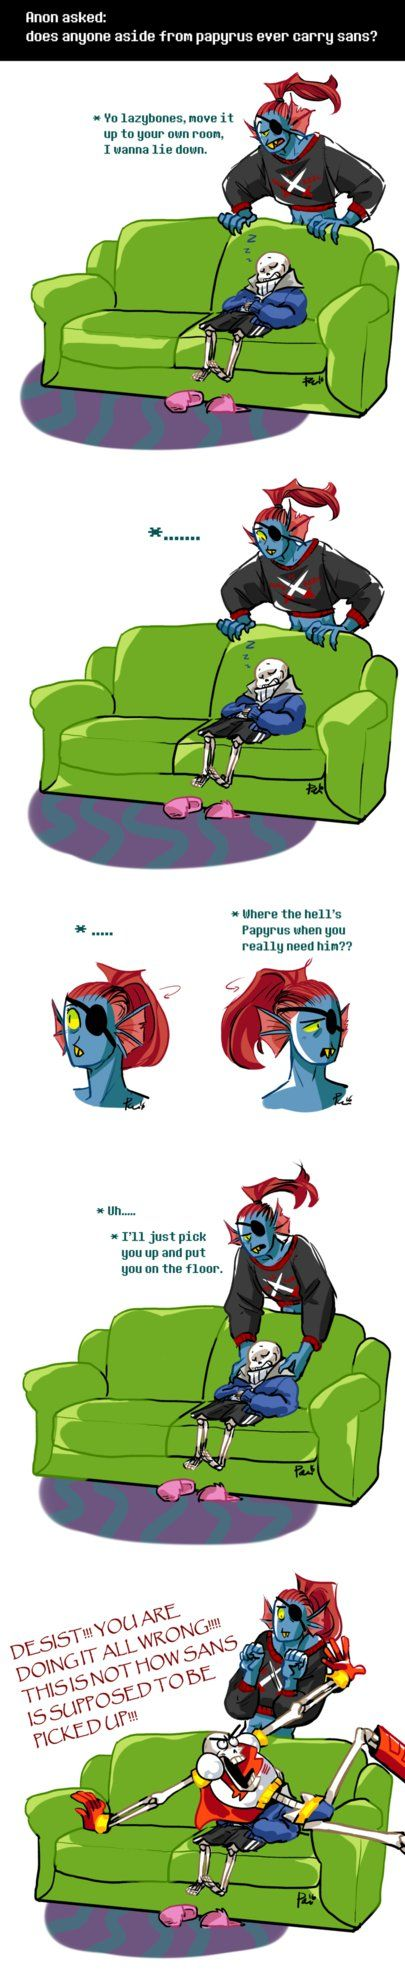 Undertale ask blog: Not everyone can do it ||| Undyne, Sans, and Papyrus ||| Undertale Fan Art by bPAVLICA on DeviantArt